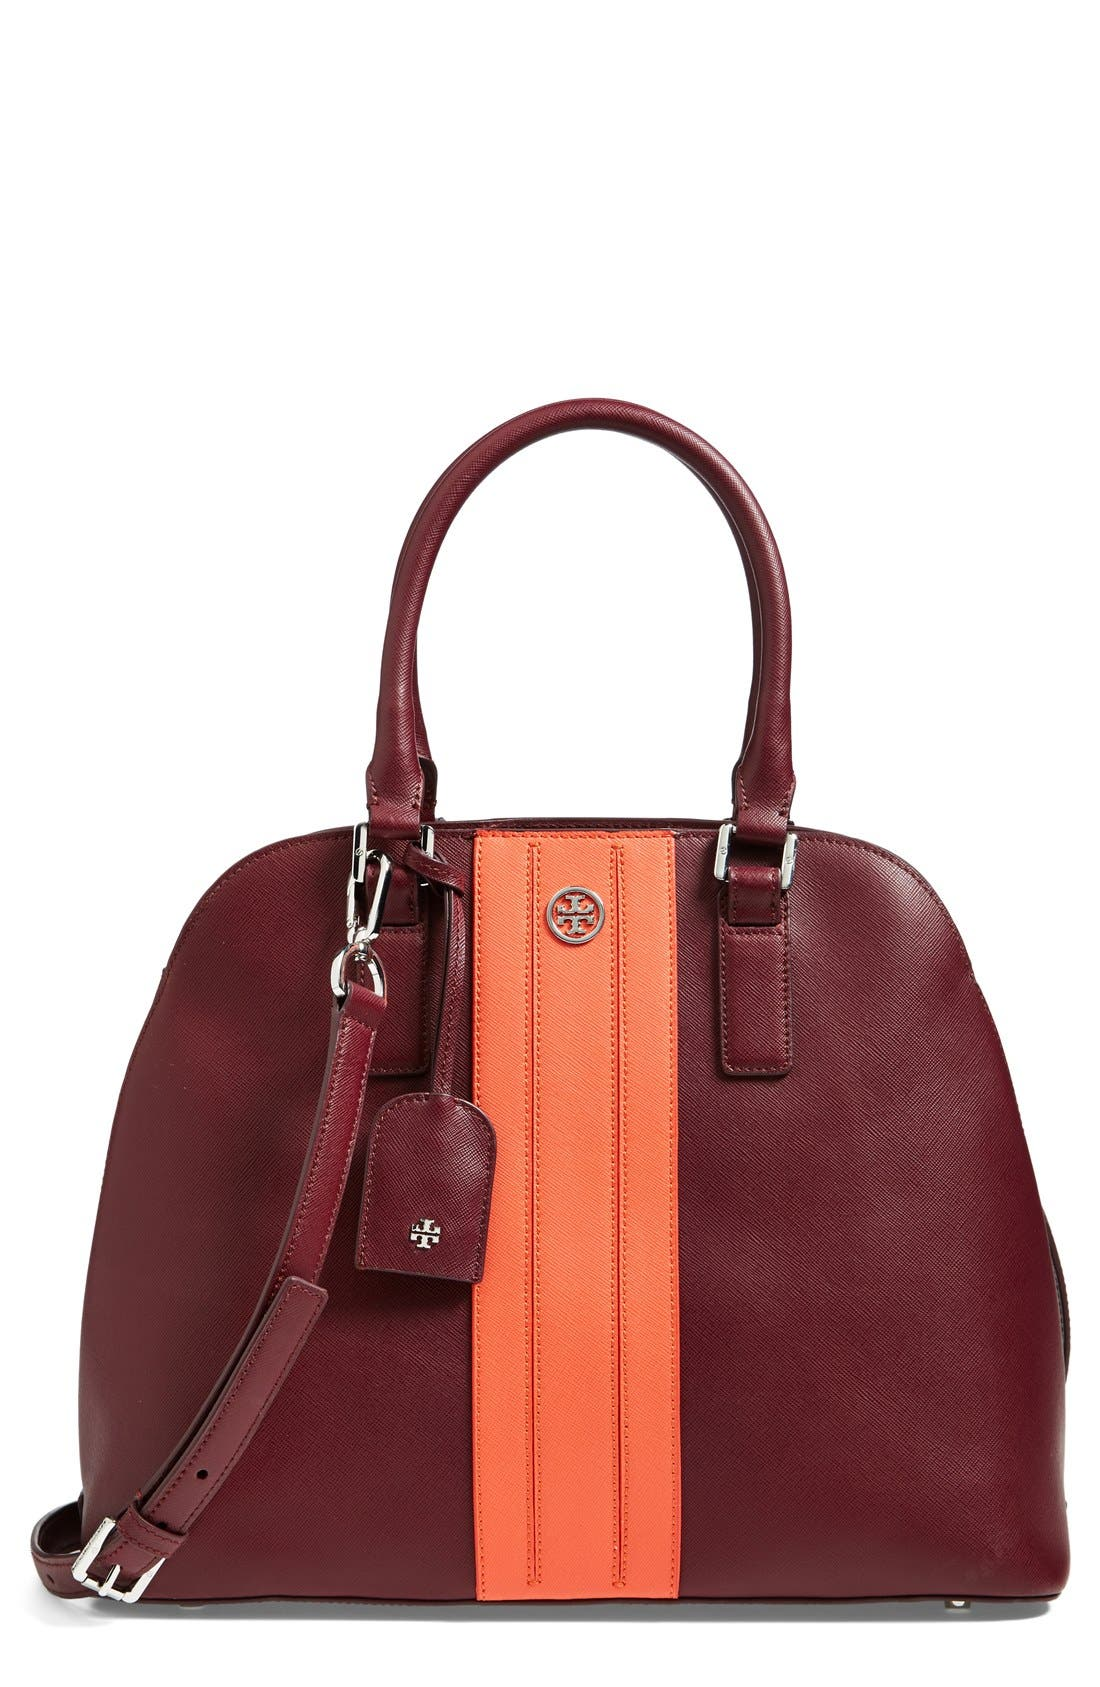 Main Image - Tory Burch Colorblock Leather Dome Satchel